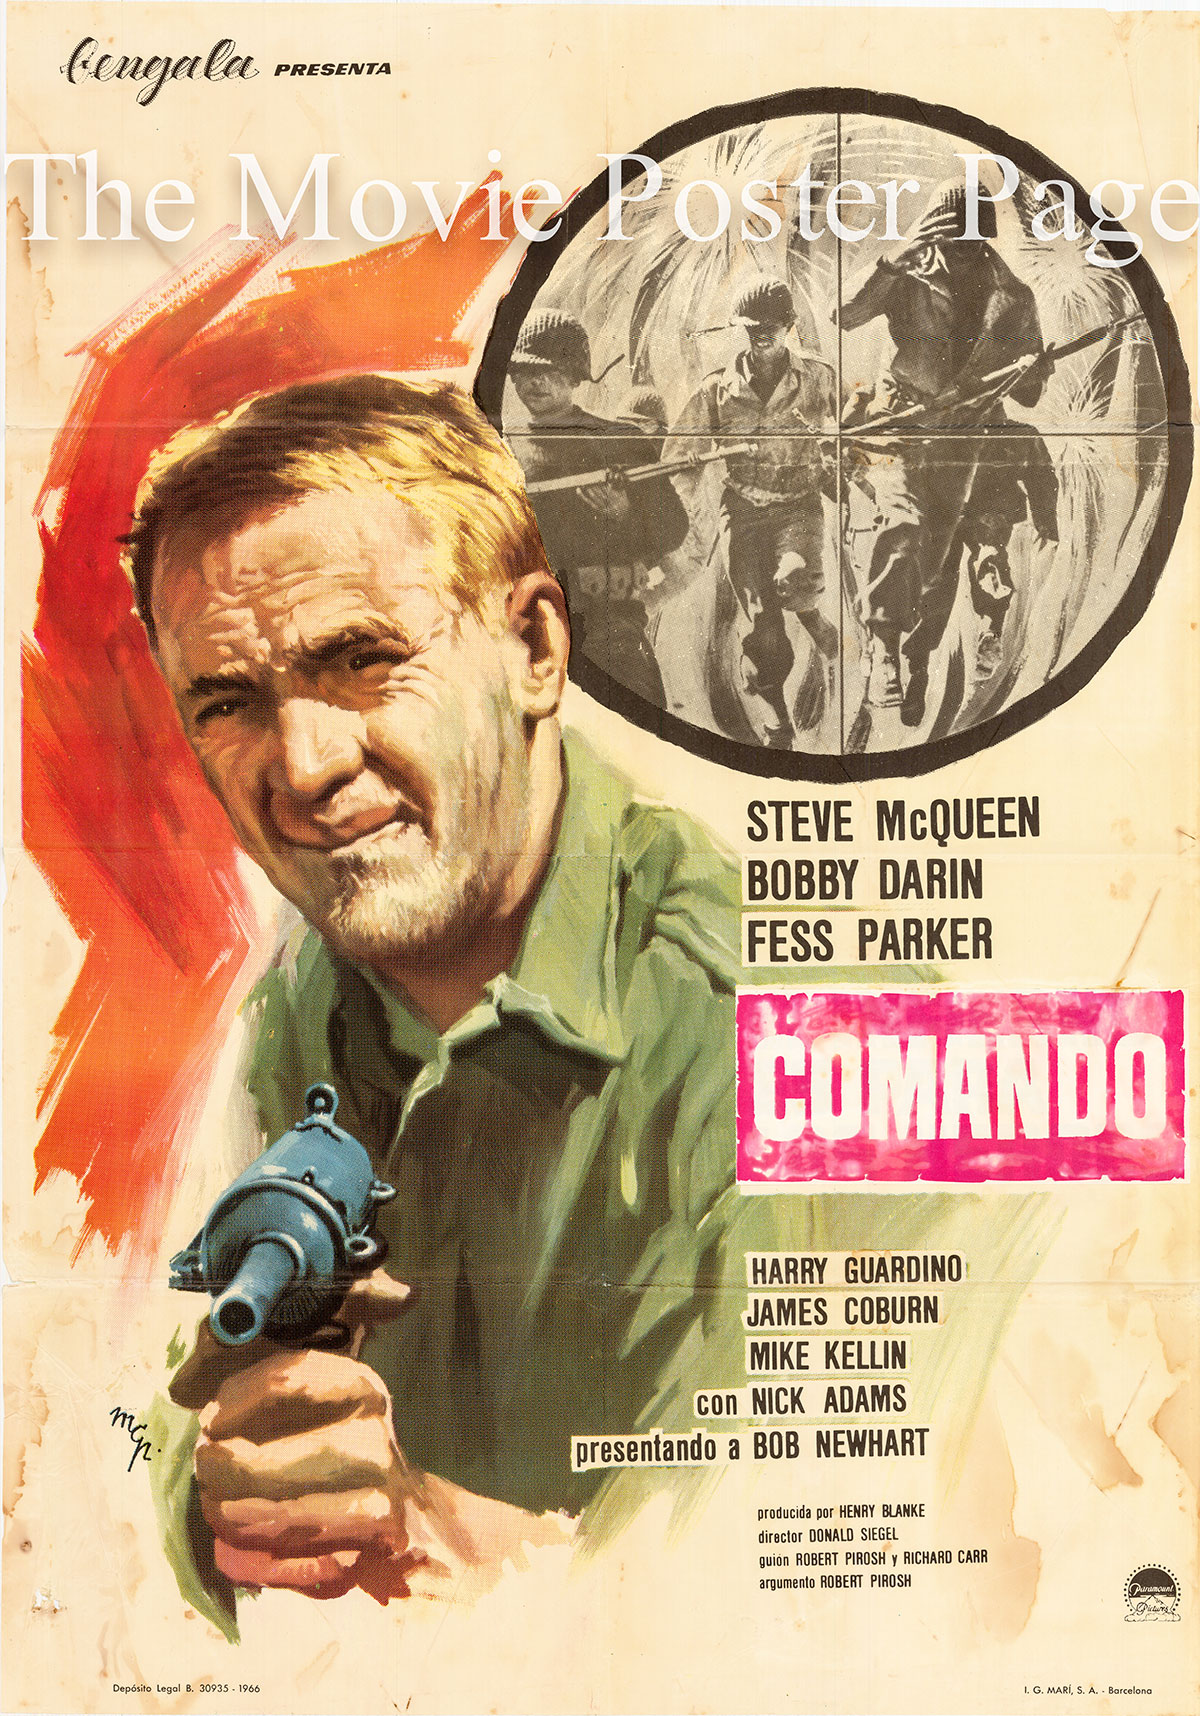 Pictured is a Spanish one-sheet poster for a 1966 rerelease of the 1962 Donald Siegel film Hell is for Heroes starring Steve McQueen.